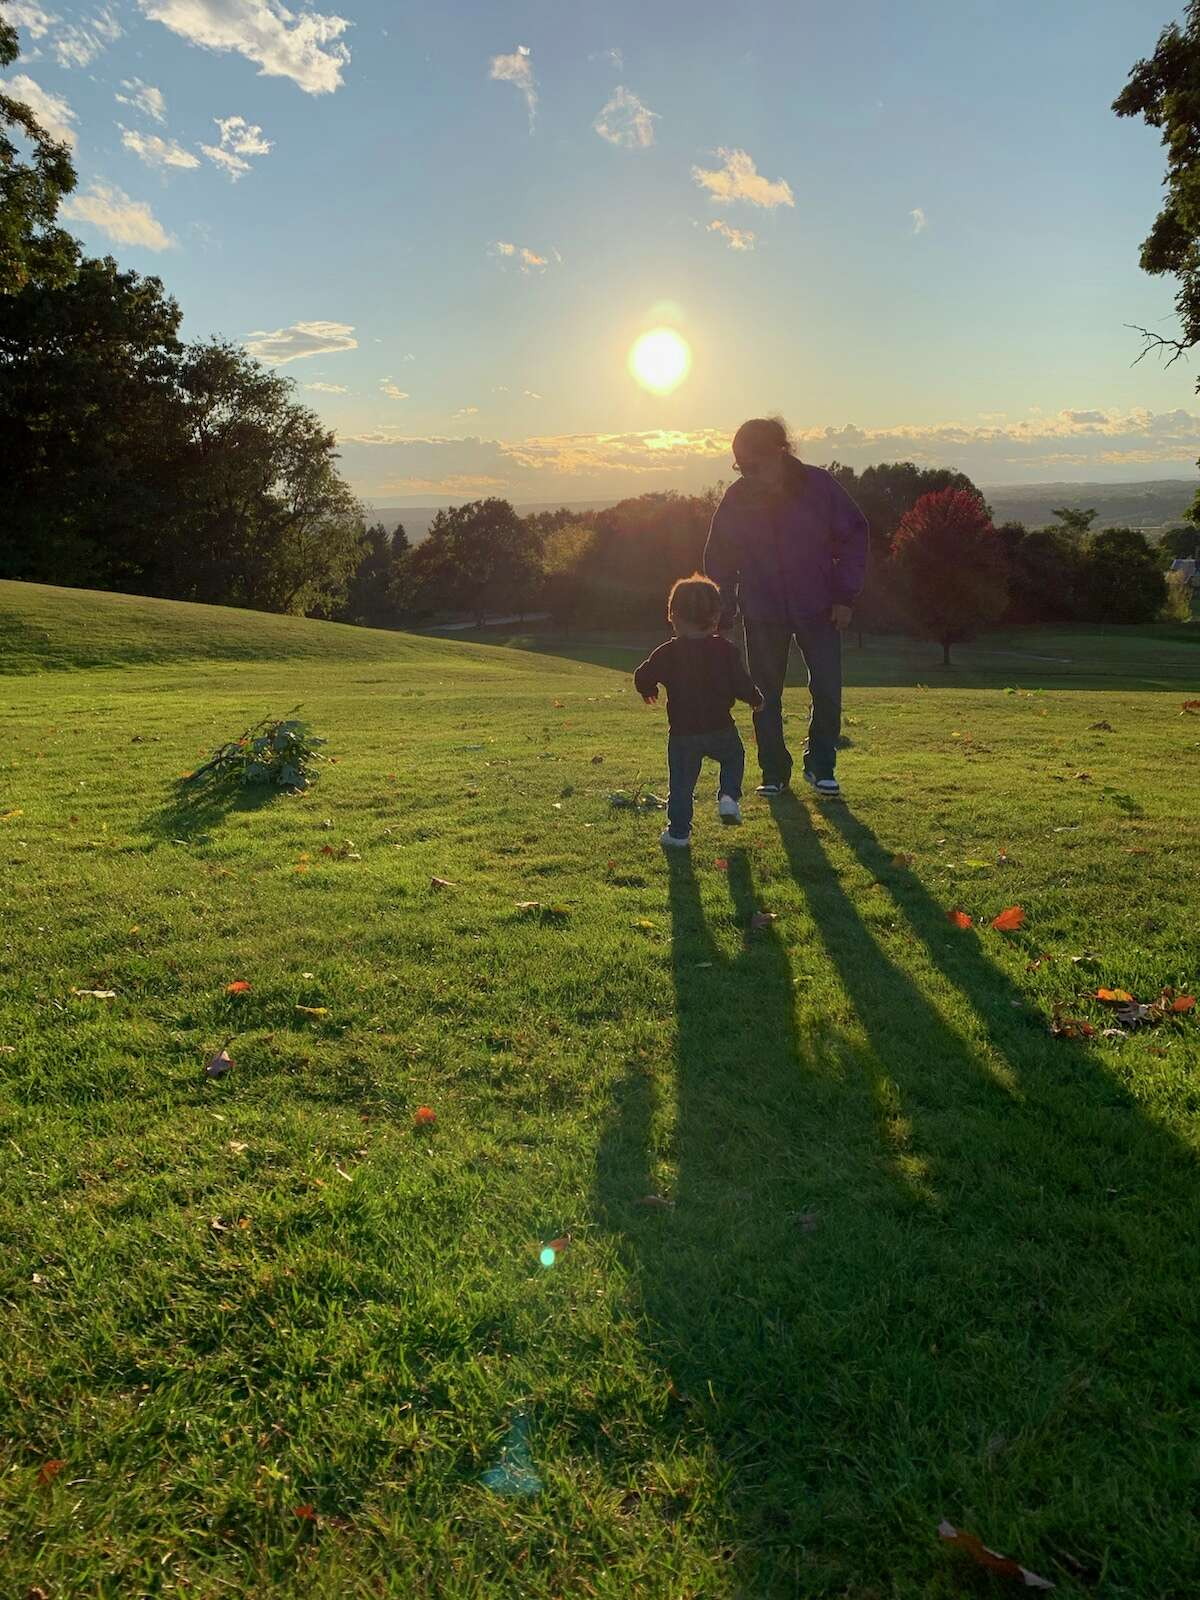 Troy resident Danyelle Hagan's son Bryson takes a late afternoon walk in Frear Park with his mom and his grandmother.